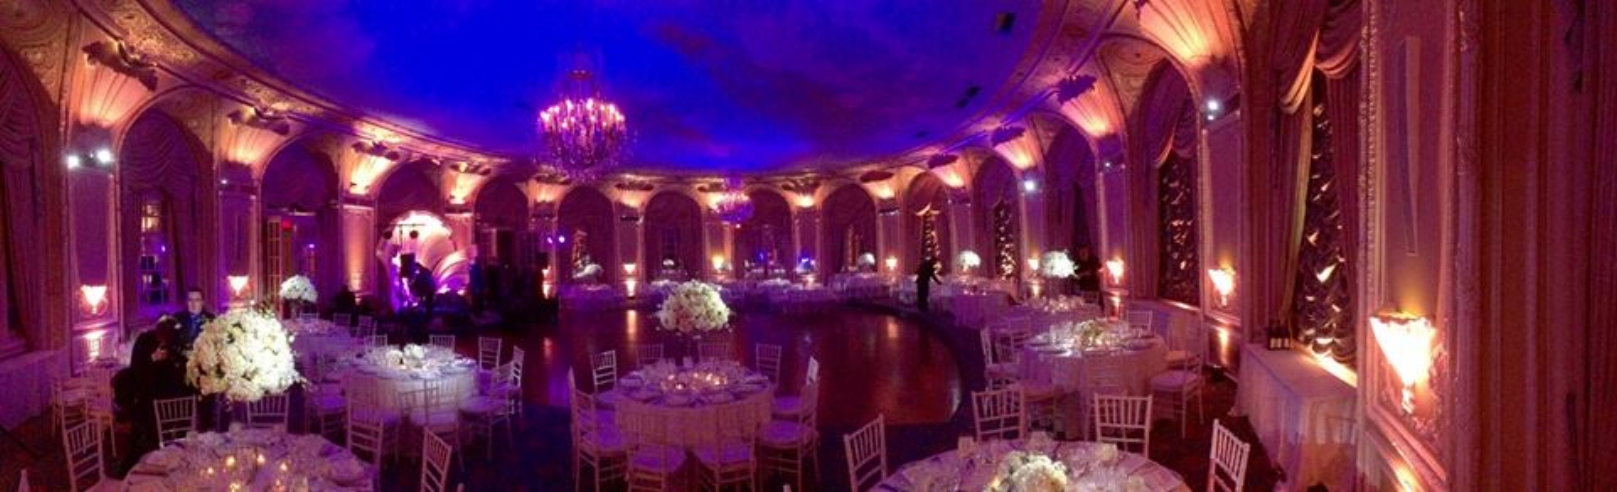 - Weddings are our specialty.